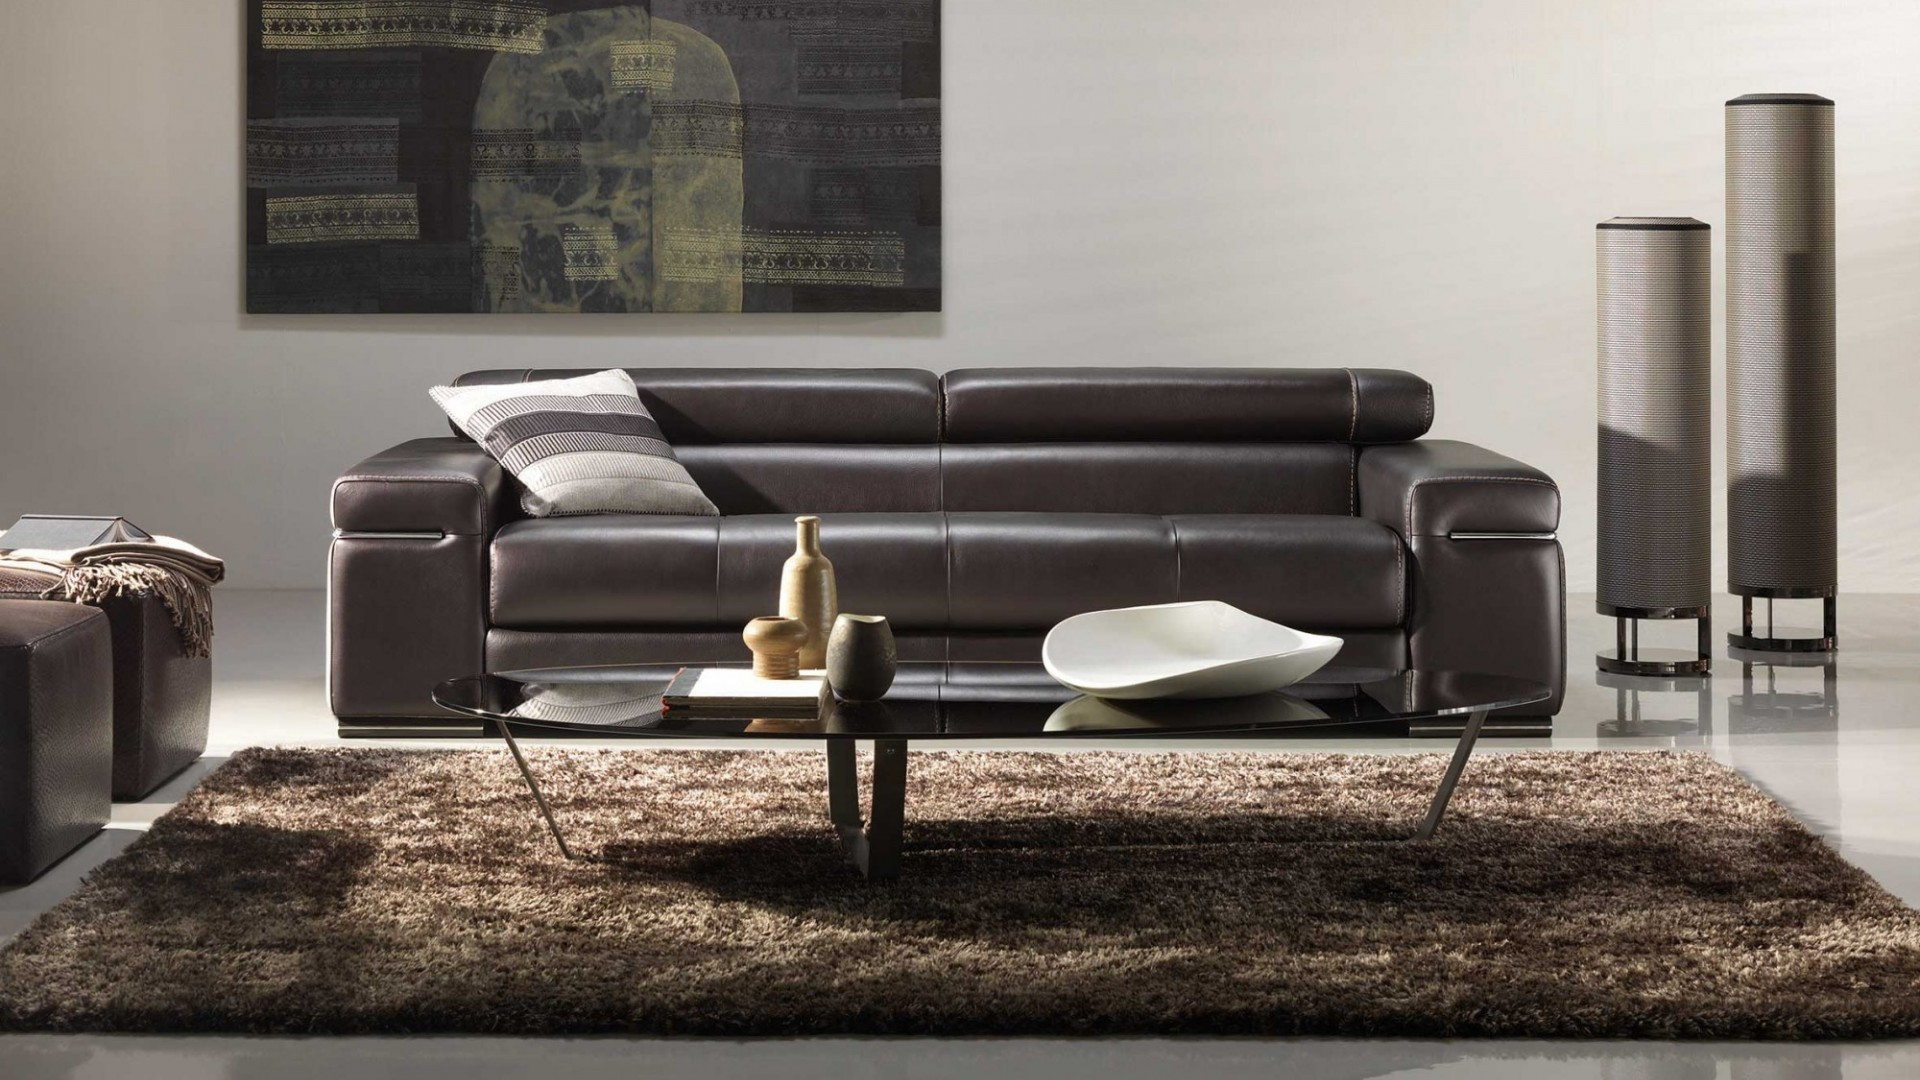 Natuzzi\'s Two Unique Approaches to Leather Upholstery | Hip Furniture